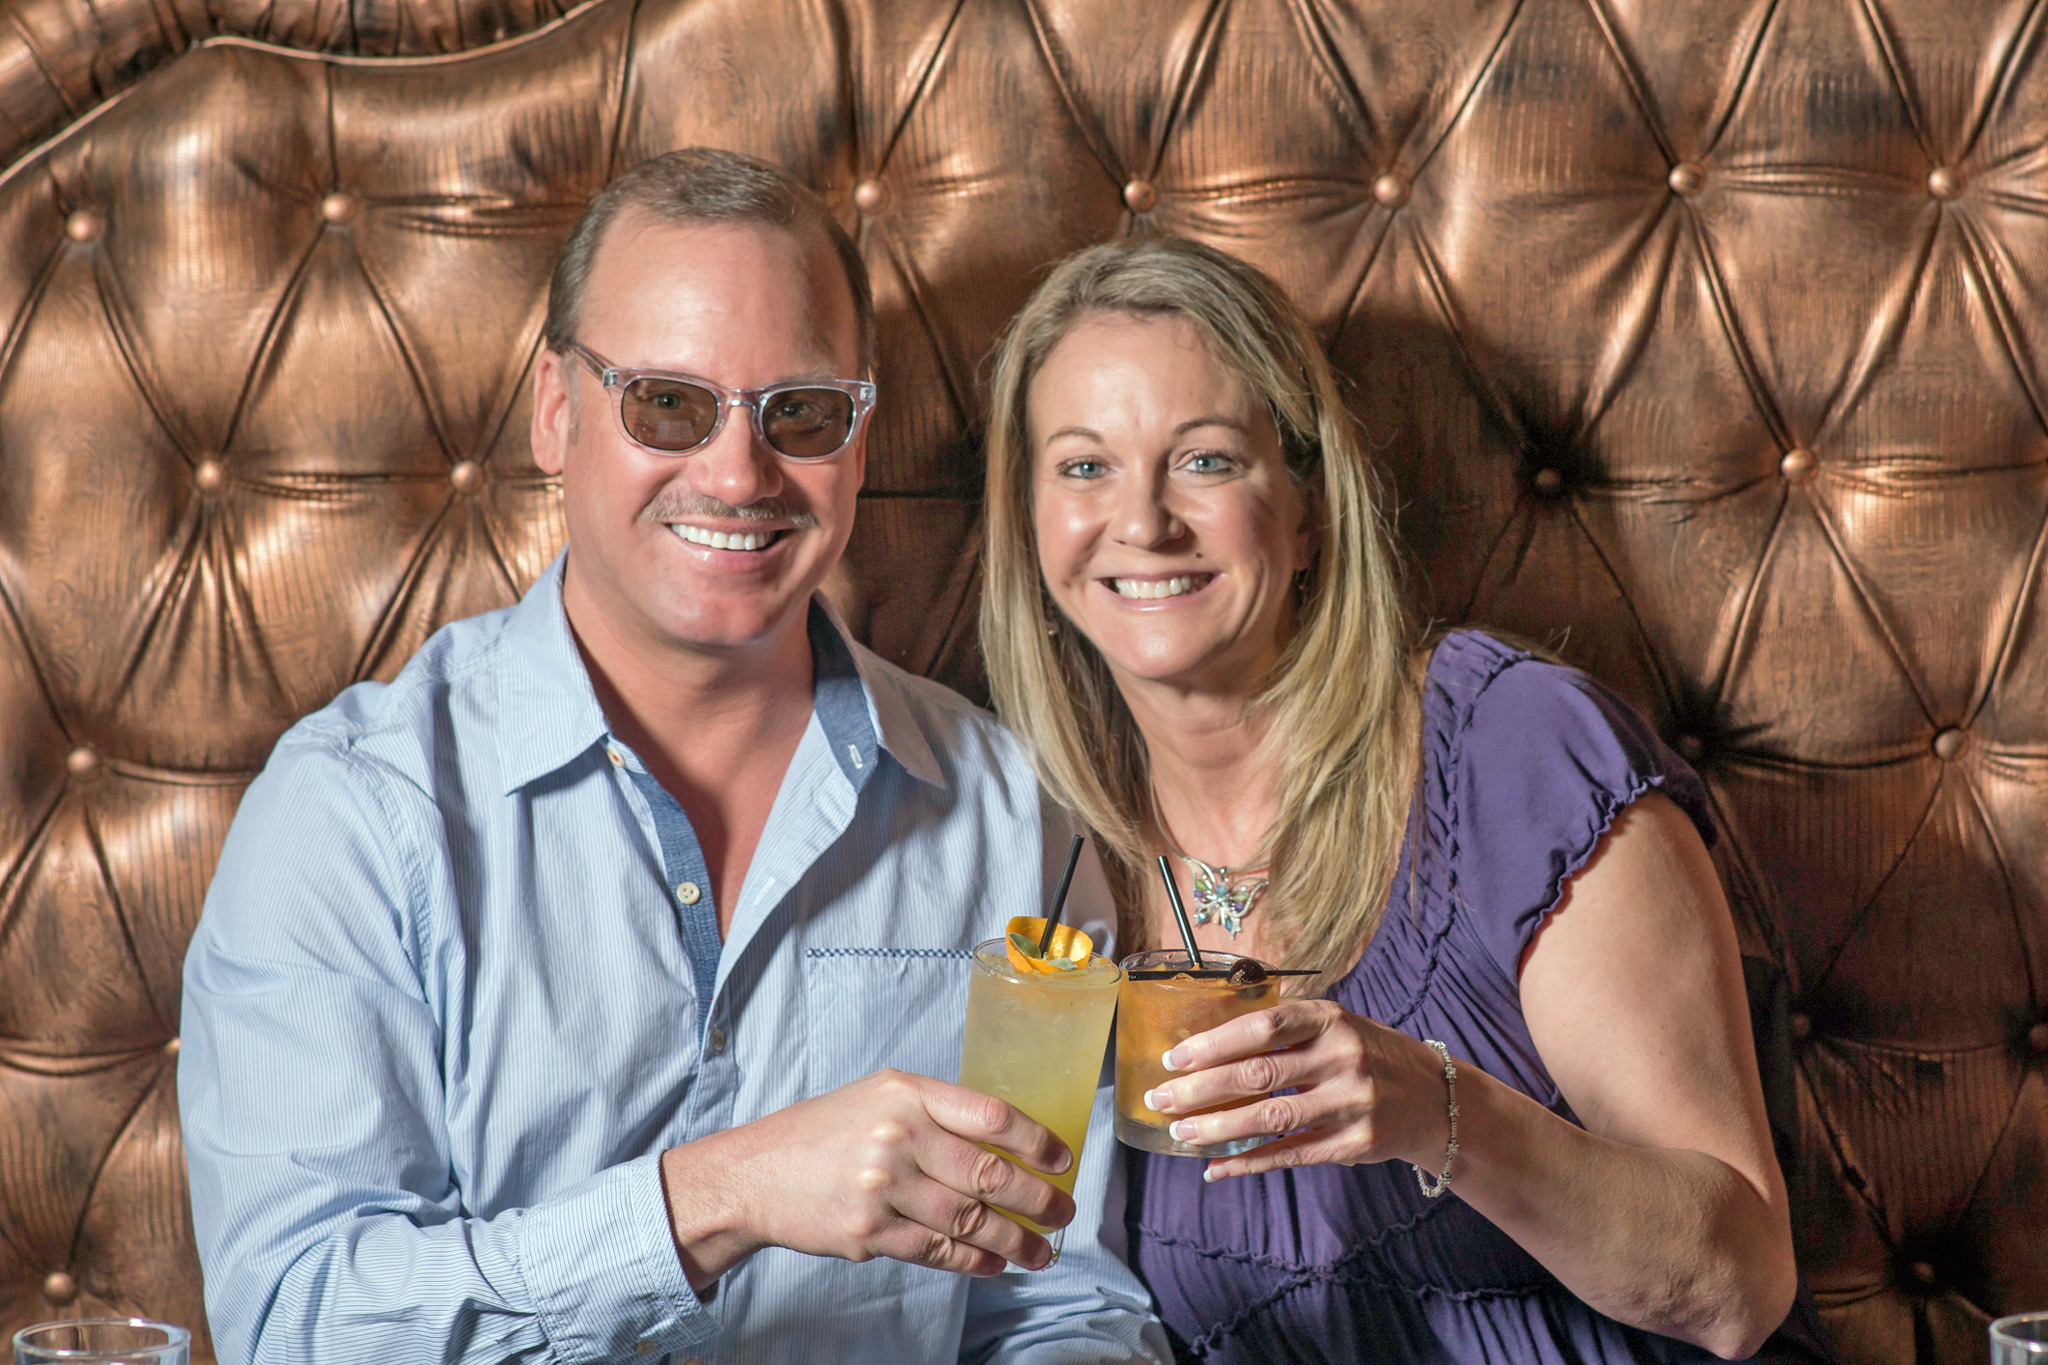 Kevin Godbee & Lori Brown of St. Petersburg Foodies